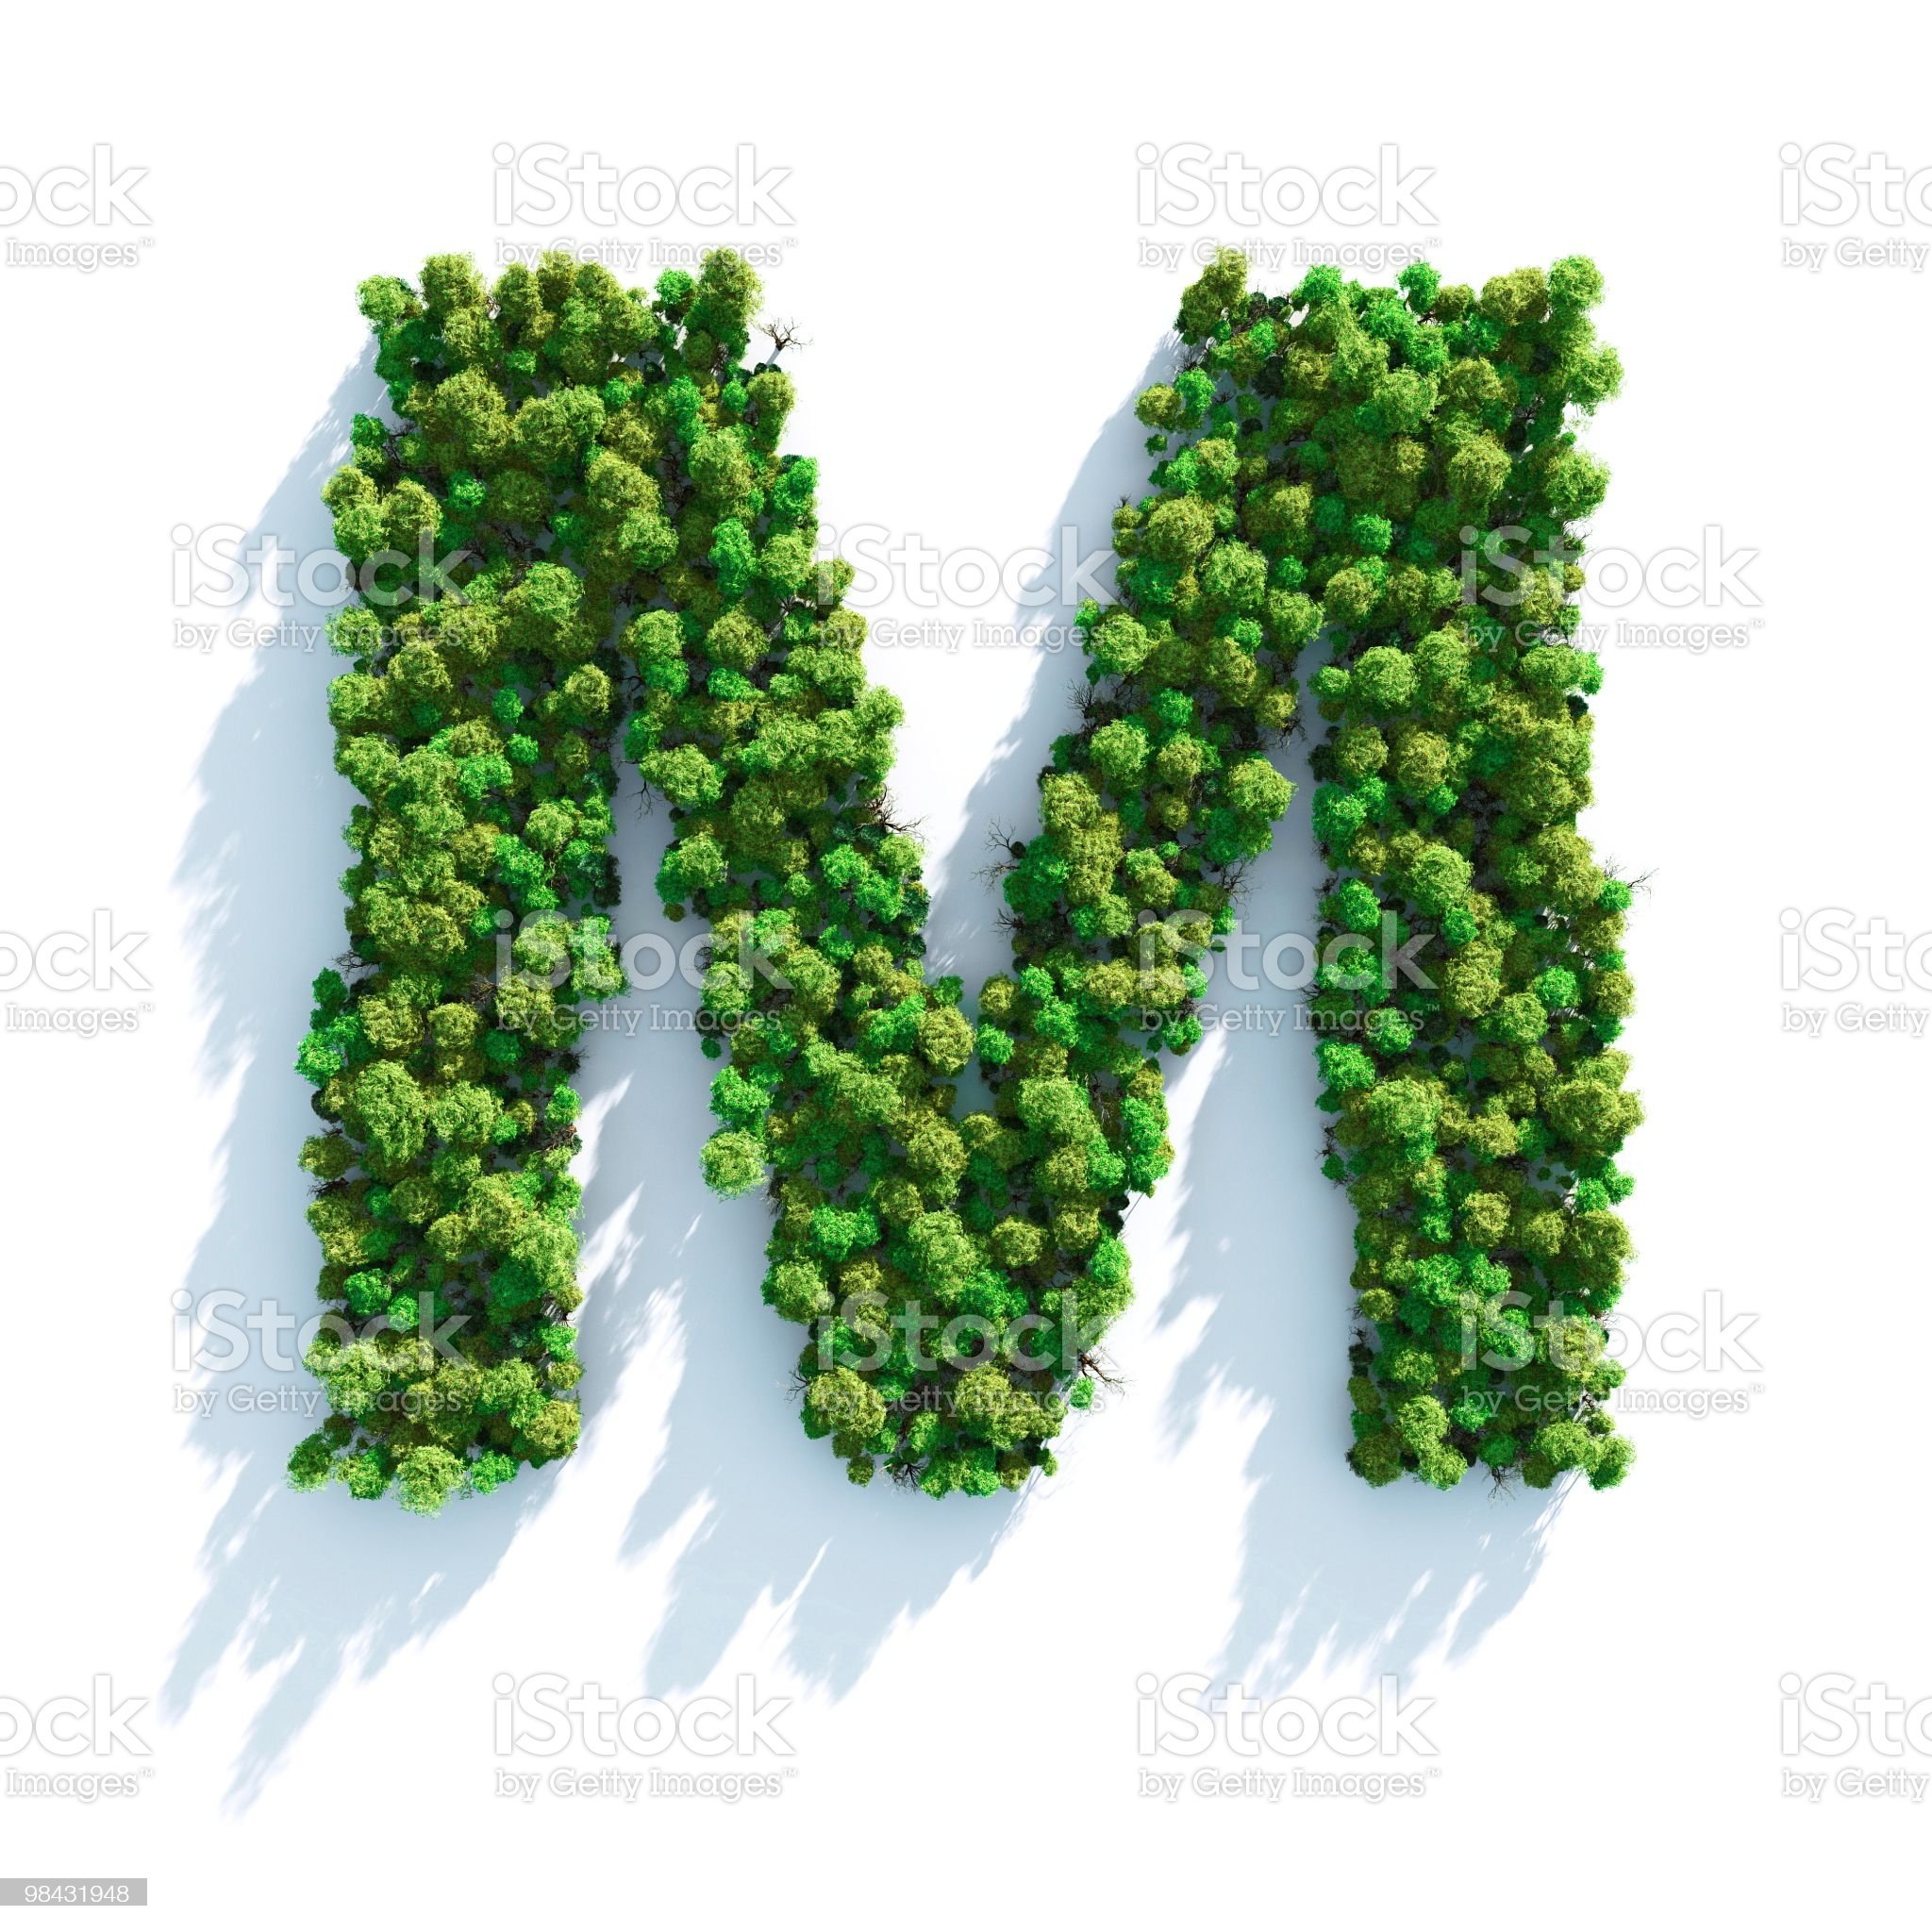 Letter M: Top View royalty-free stock photo